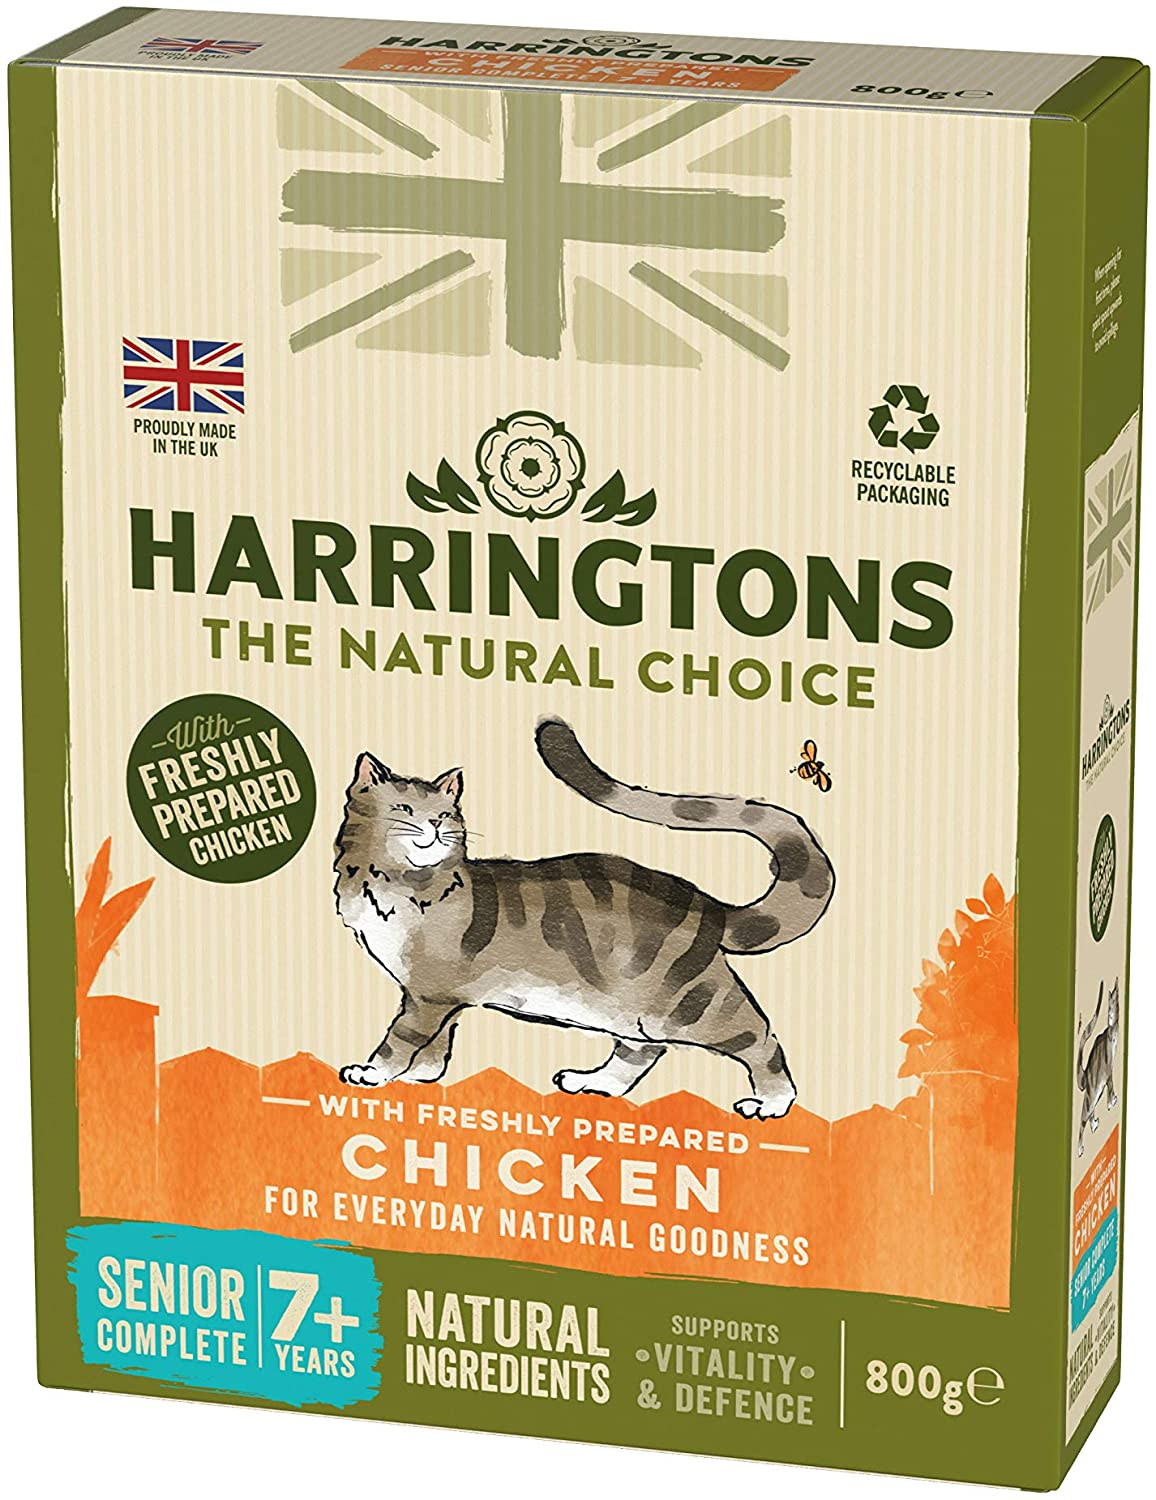 Harringtons Complete Senior Chicken Dry Cat food